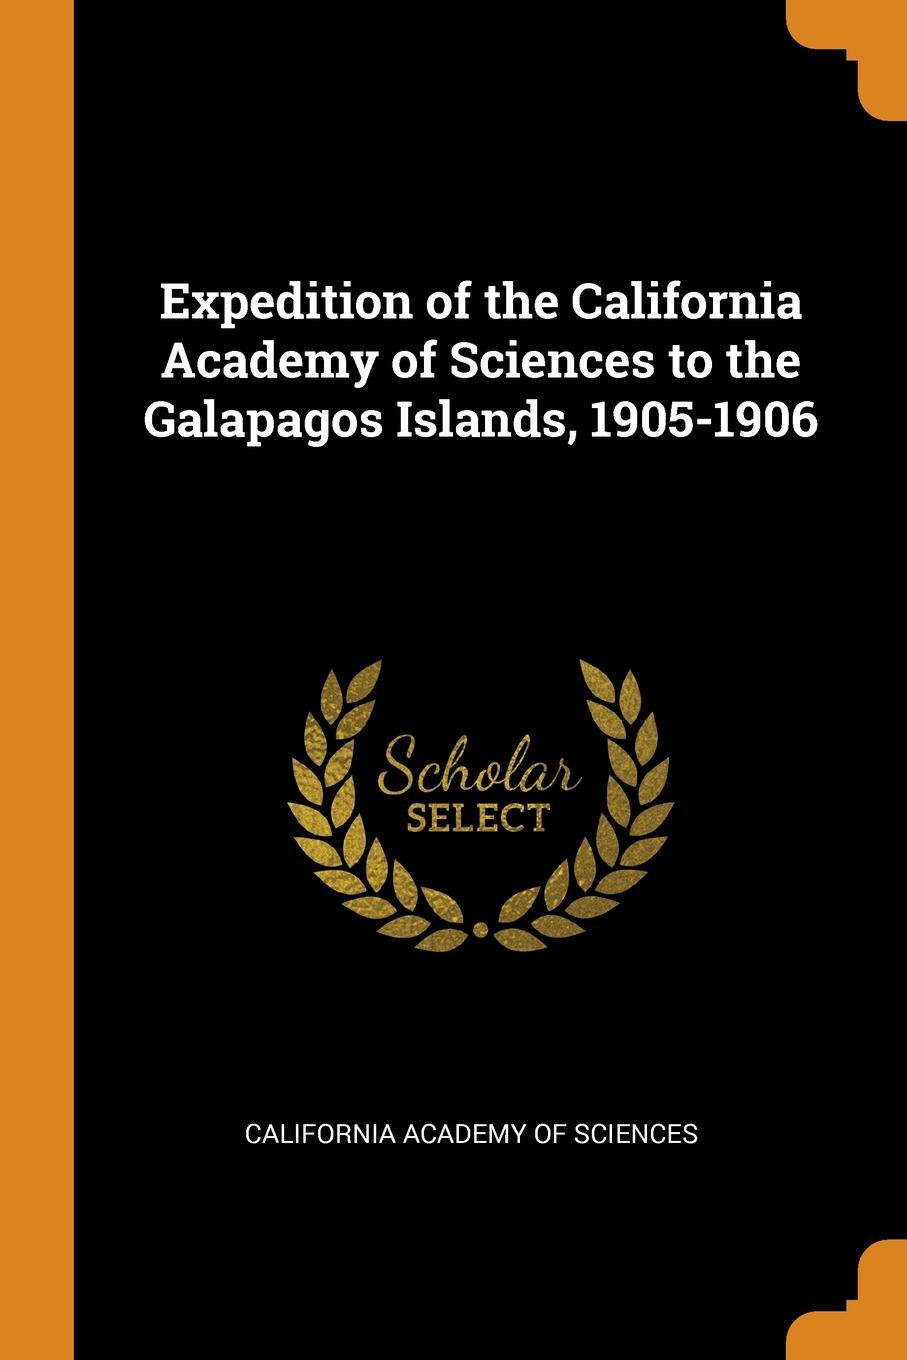 Expedition of the California Academy of Sciences to the Galapagos Islands, 1905-1906.